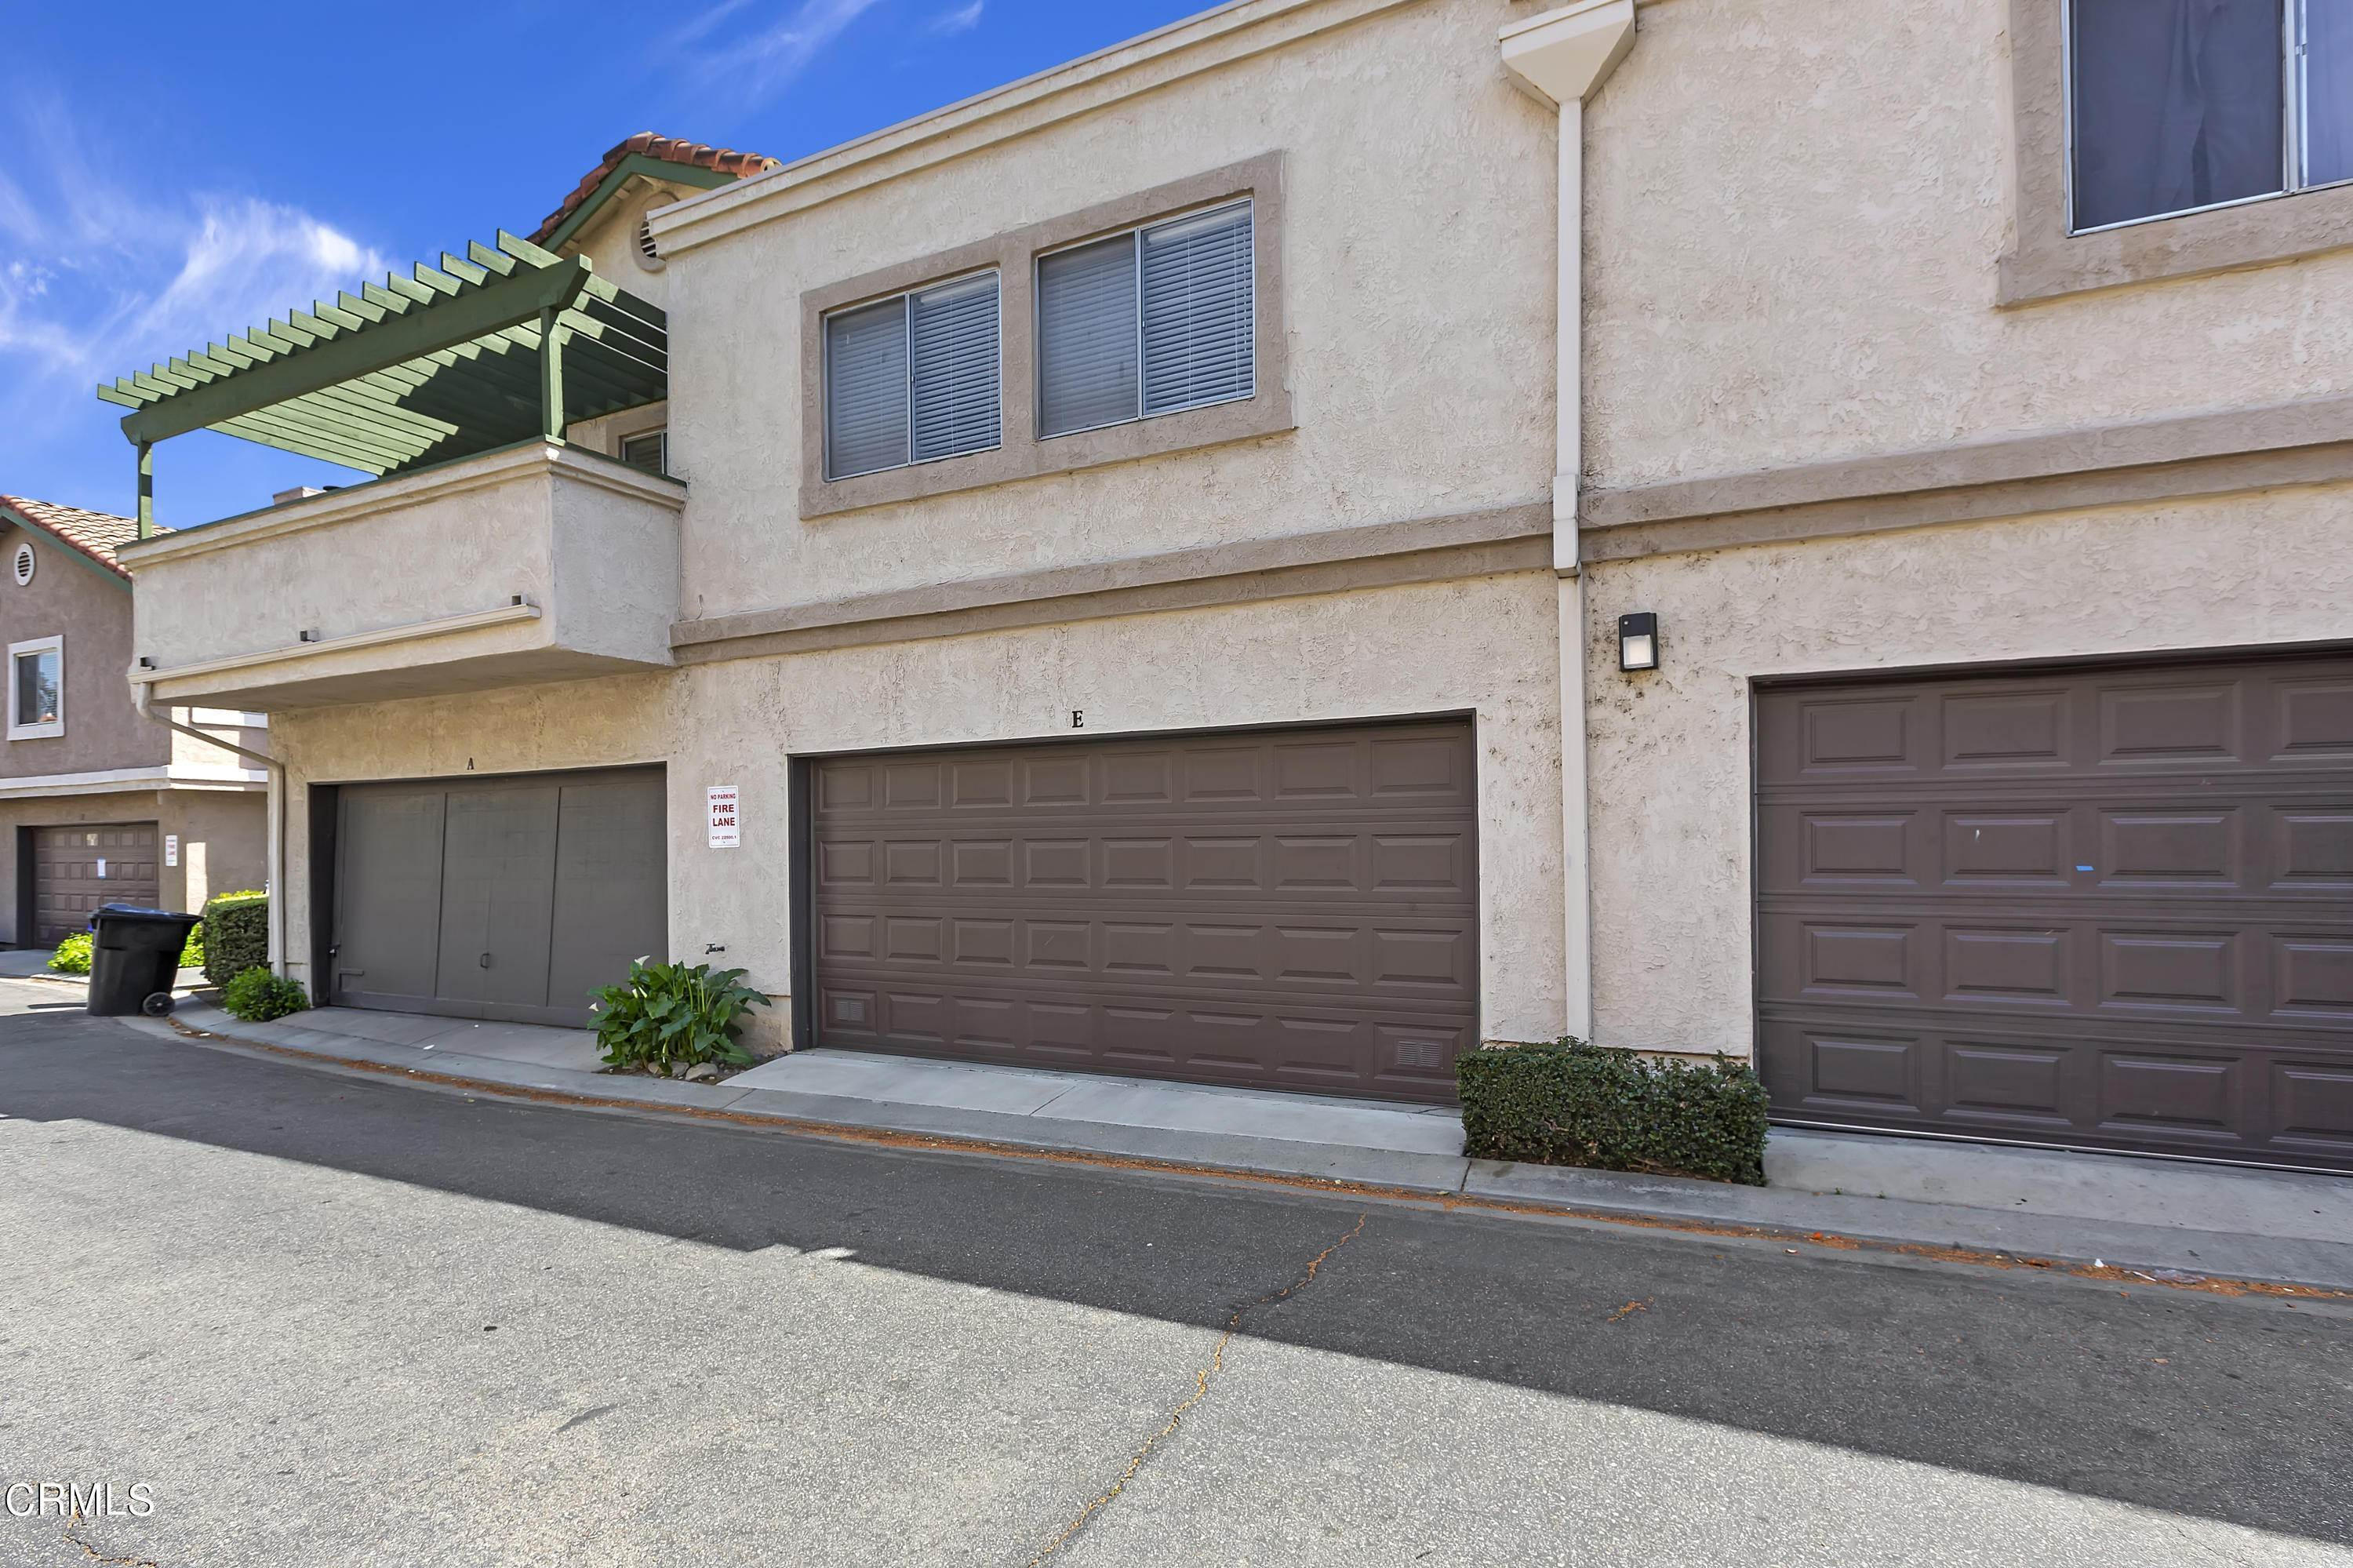 3. Condominiums for Sale at 10205 Chaparral Way E #E 10205 Chaparral Way E Rancho Cucamonga, California 91730 United States